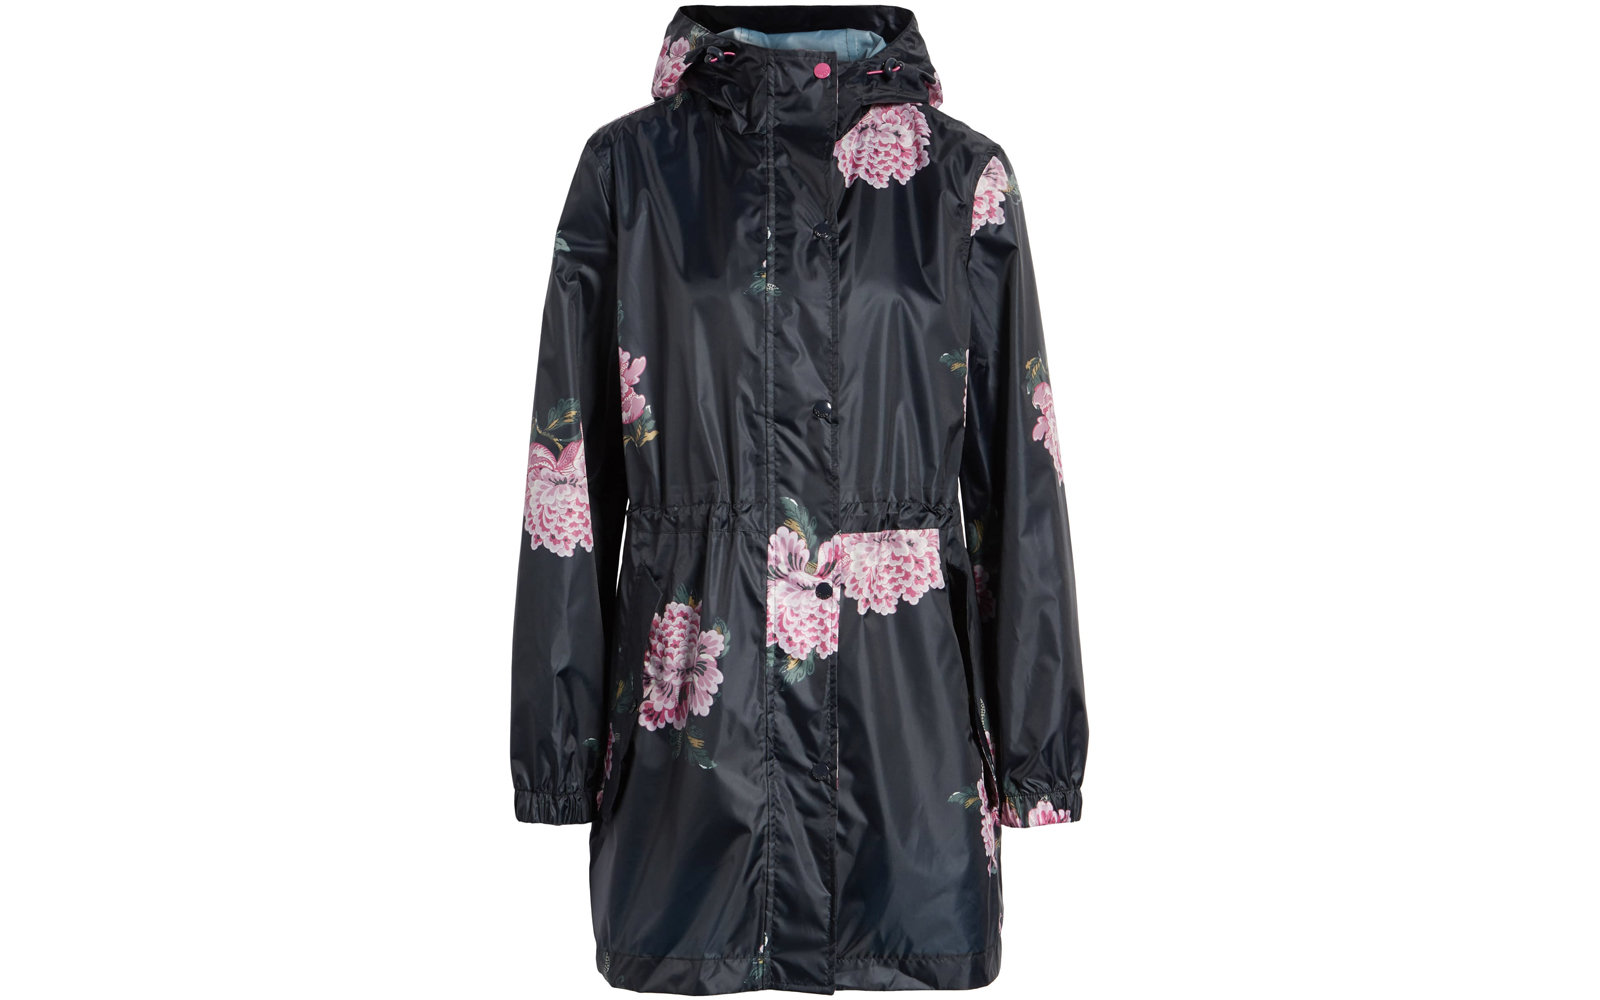 Joules 'Right as Rain' Packable Print Hooded Raincoat